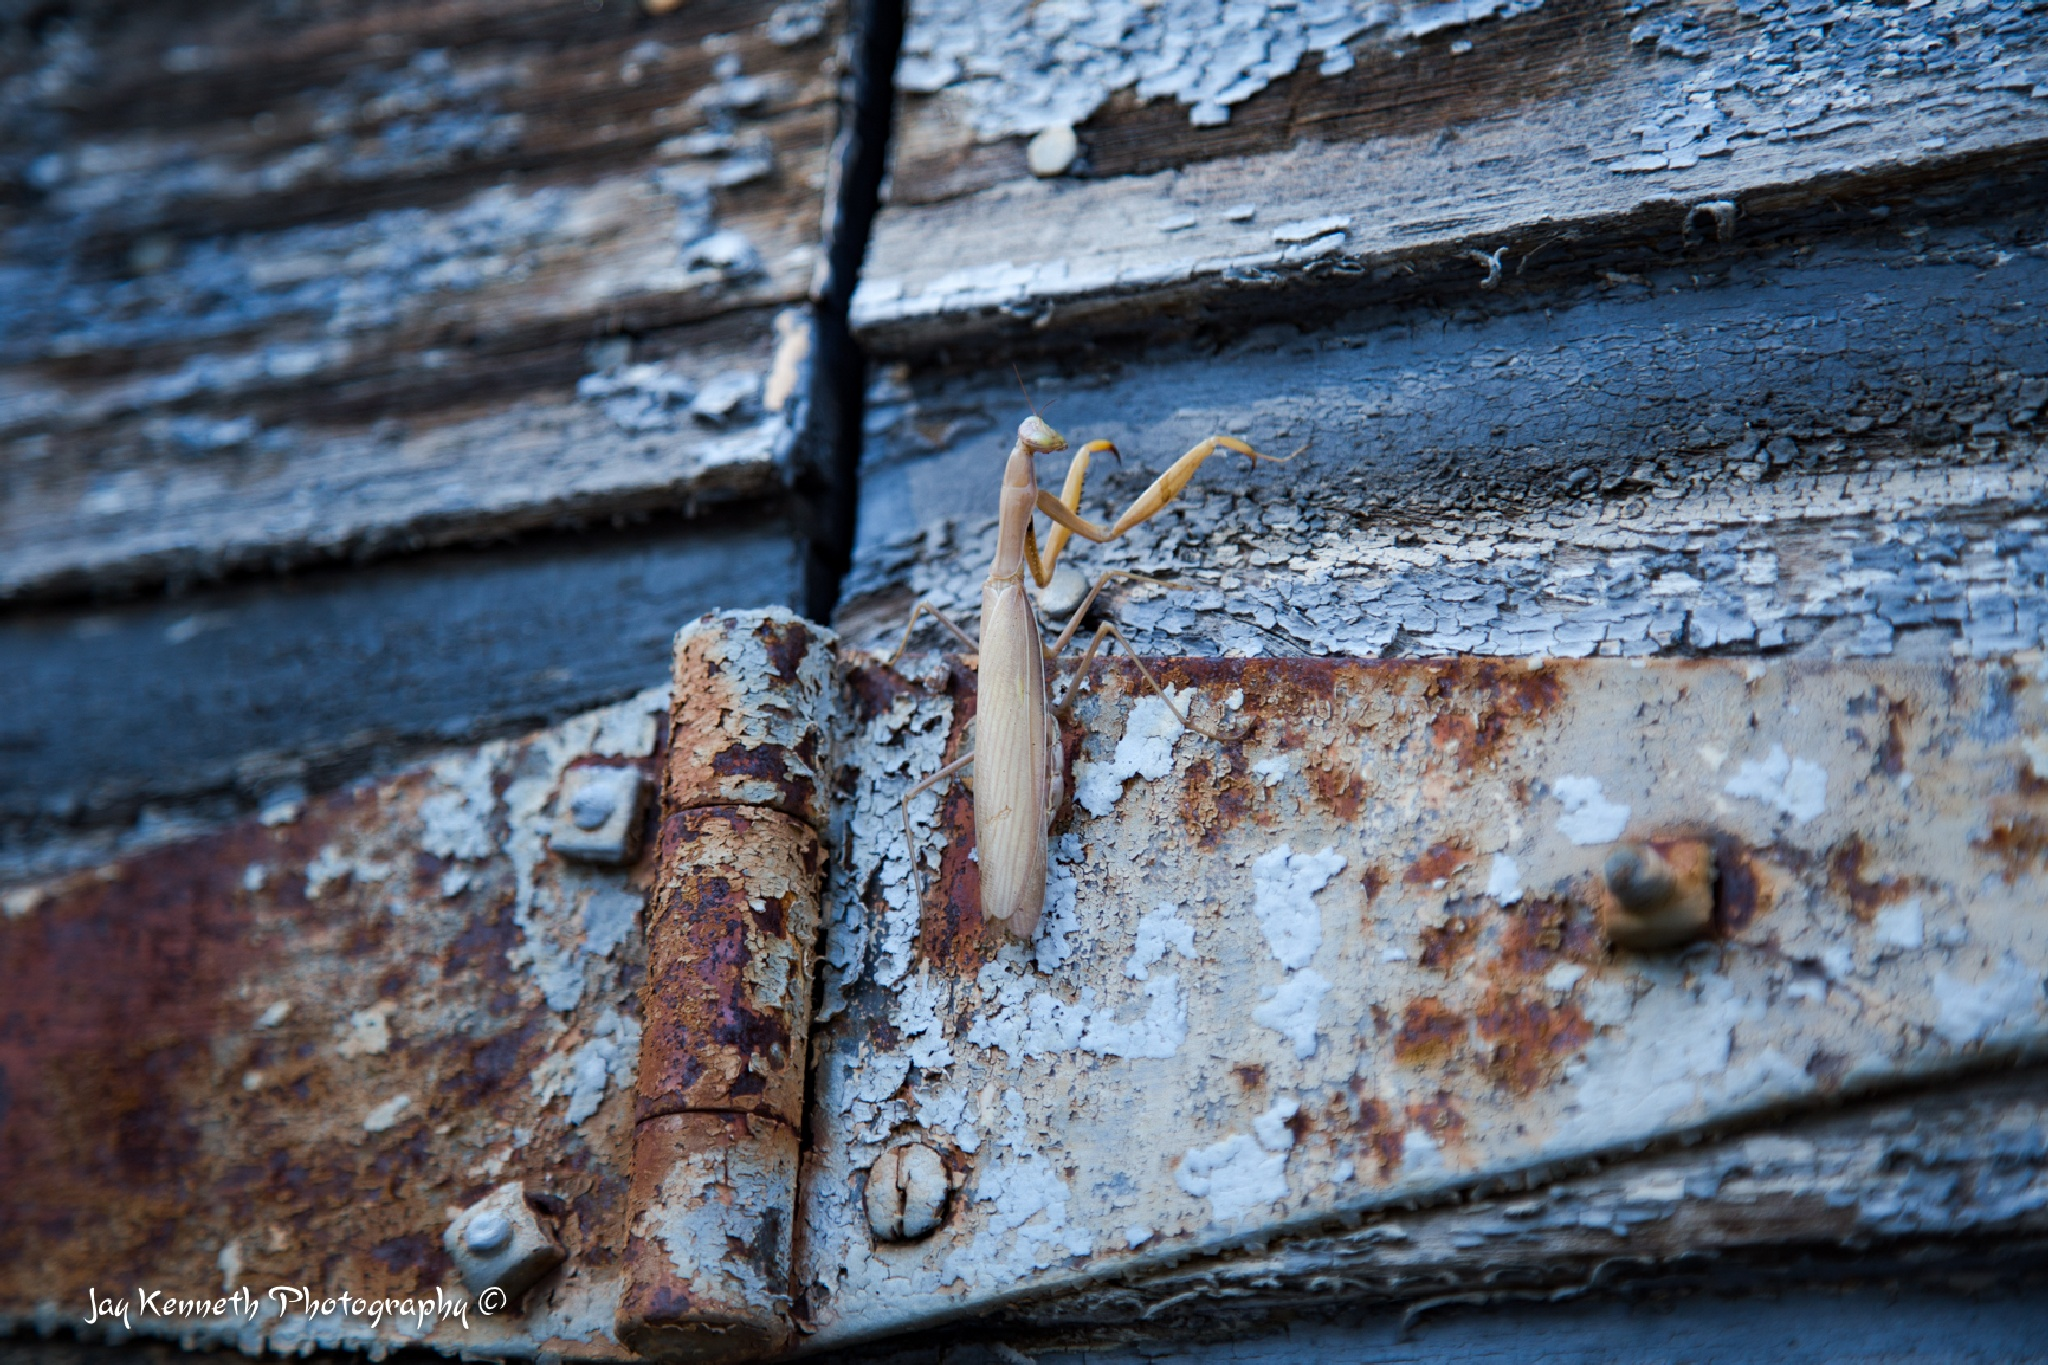 Praying Mantis on Old Hinge by Jay Kenneth Usselman